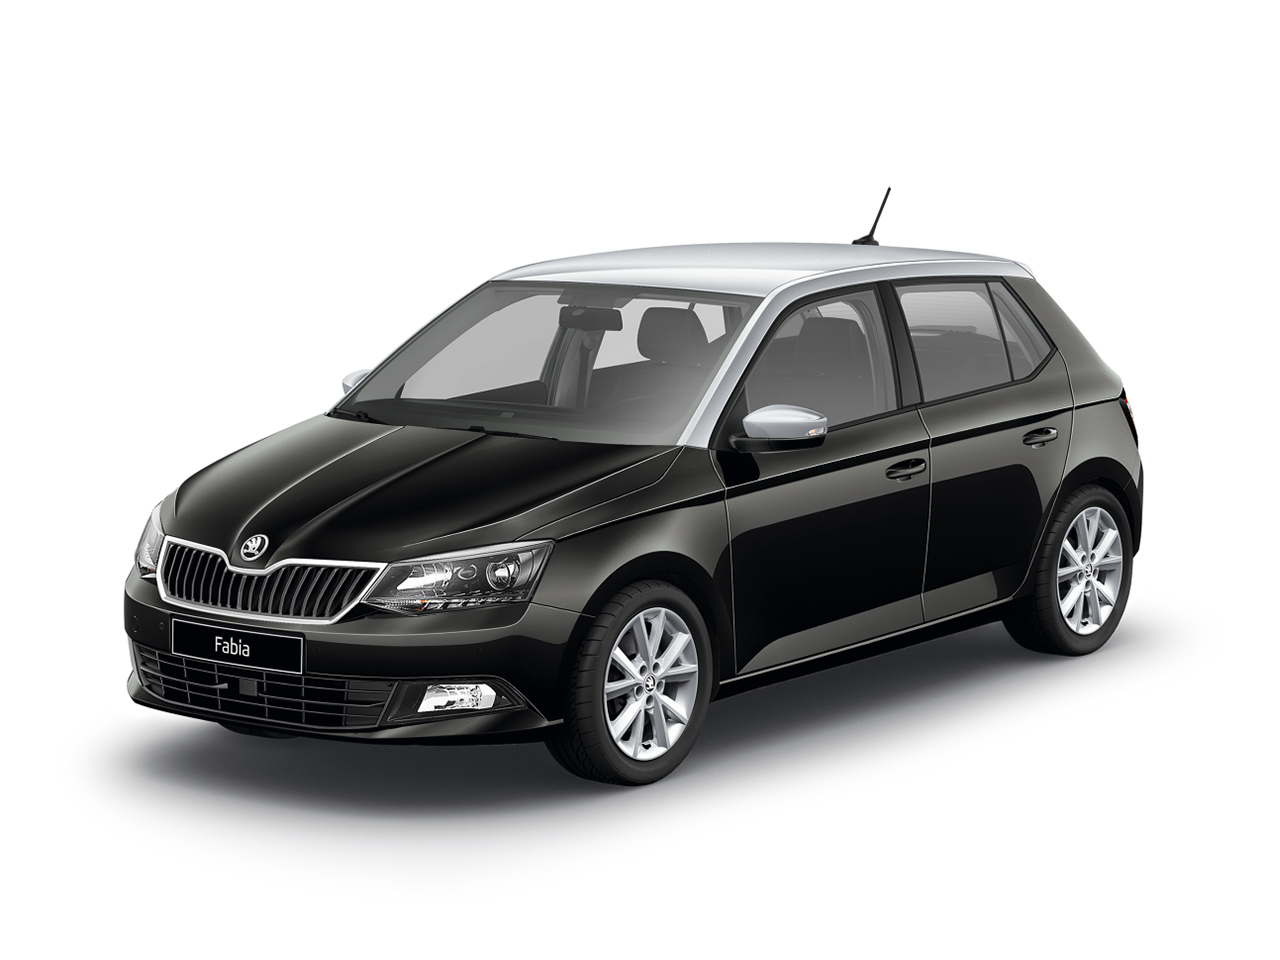 2018 skoda fabia prices in egypt gulf specs reviews for cairo alexandria and giza yallamotor. Black Bedroom Furniture Sets. Home Design Ideas